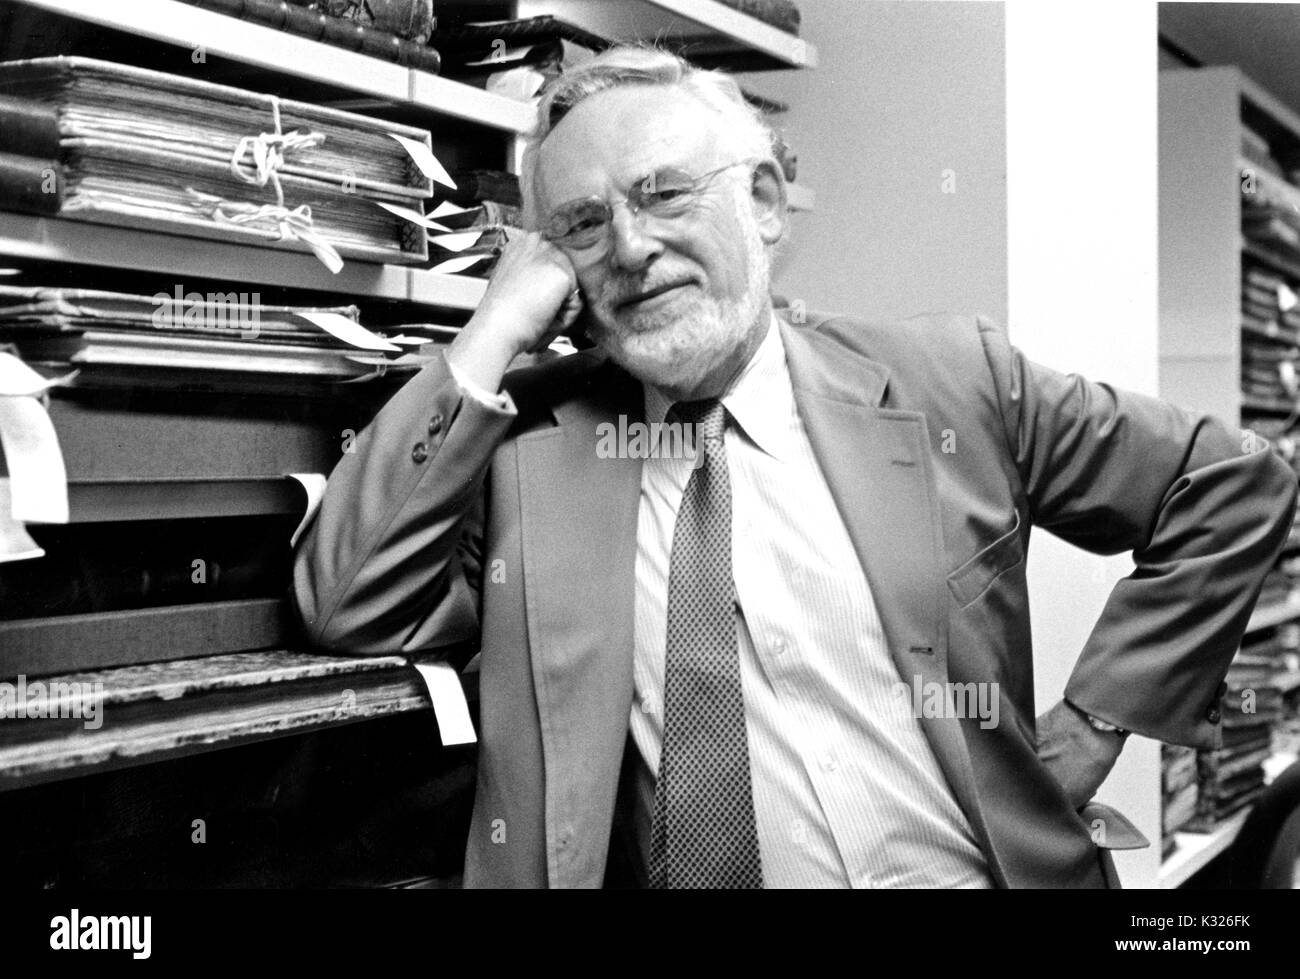 Jerome Melvin Edelstein, bibliographer and scholar within many fields of the humanities, leans against shelves holding materials from a library's special collections, 1990. - Stock Image